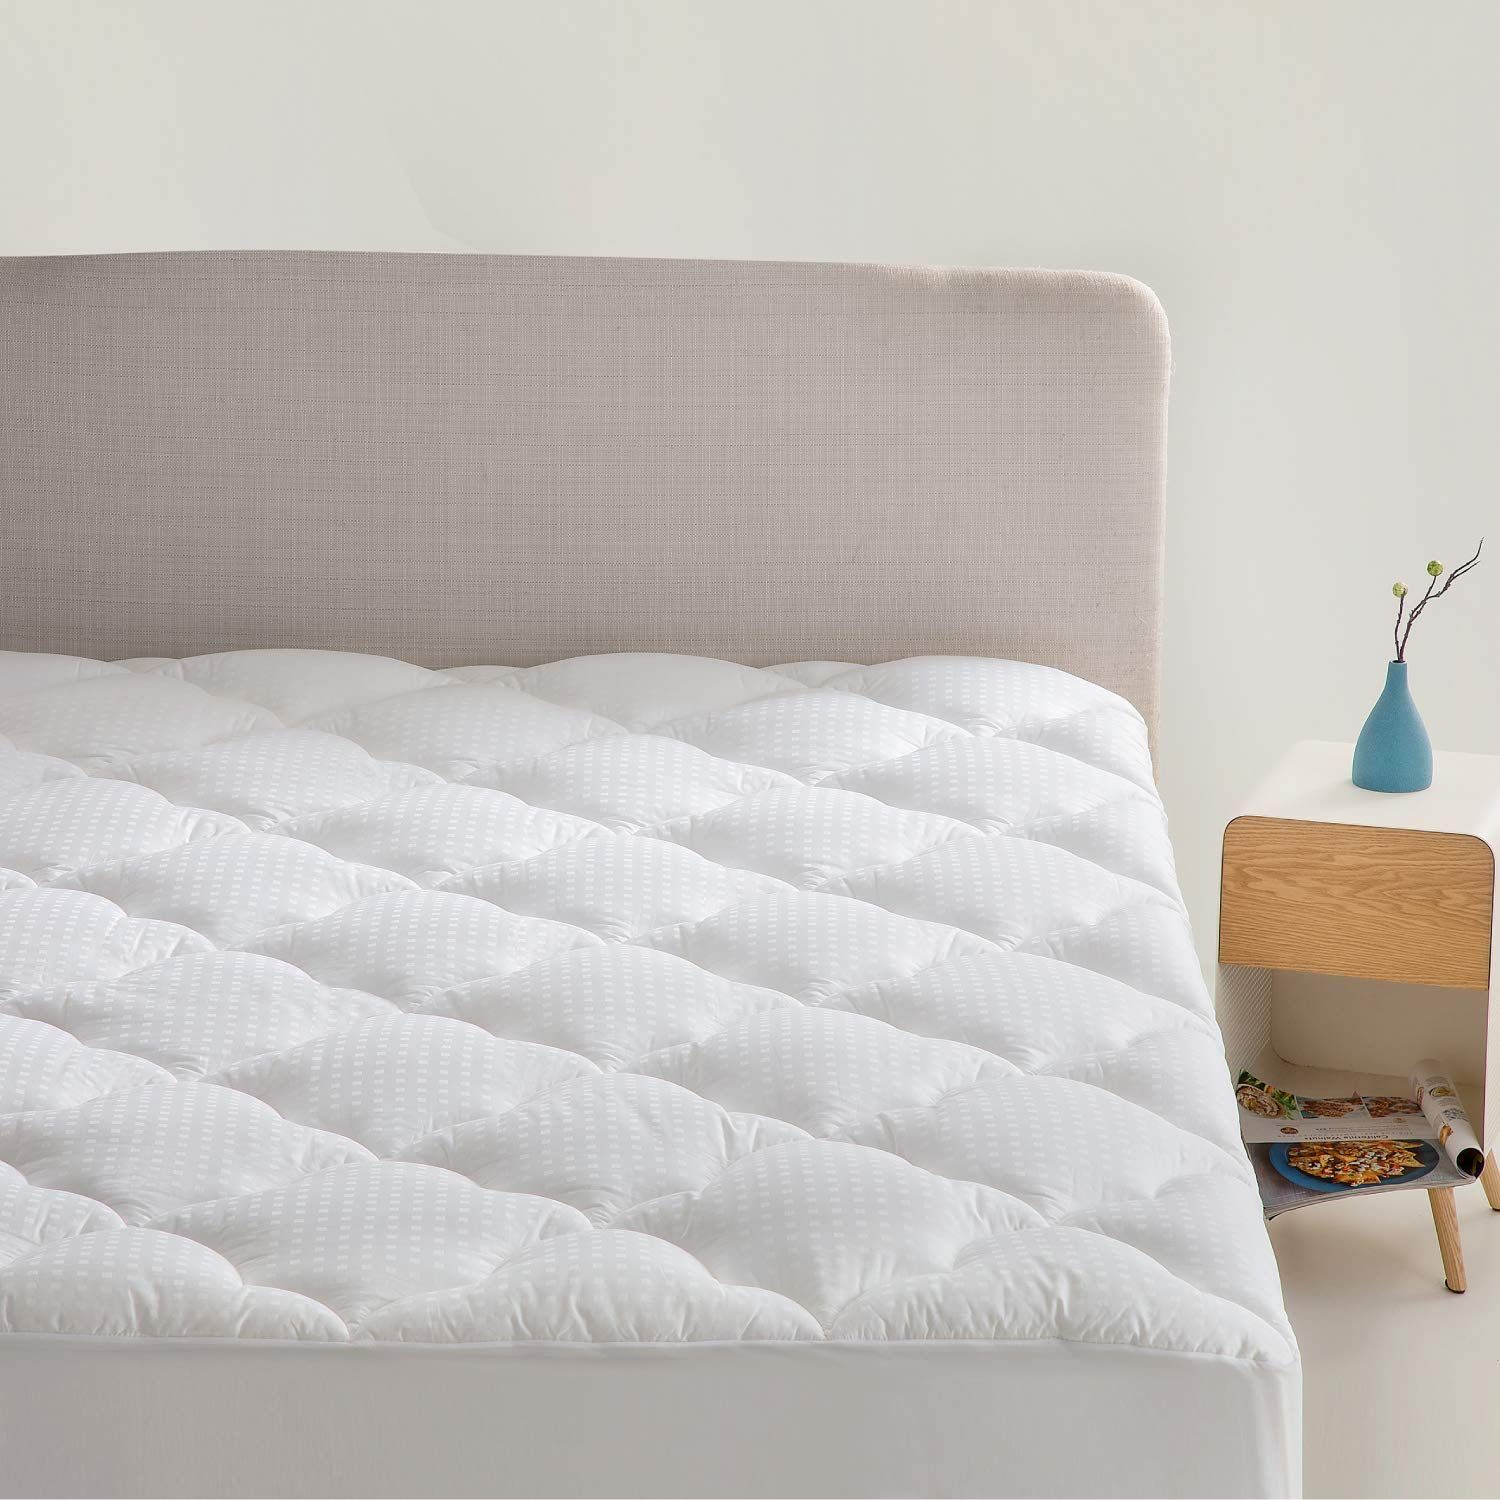 With Soft Bed Mattress Pads You Can Revitalize A Sagged Mattress